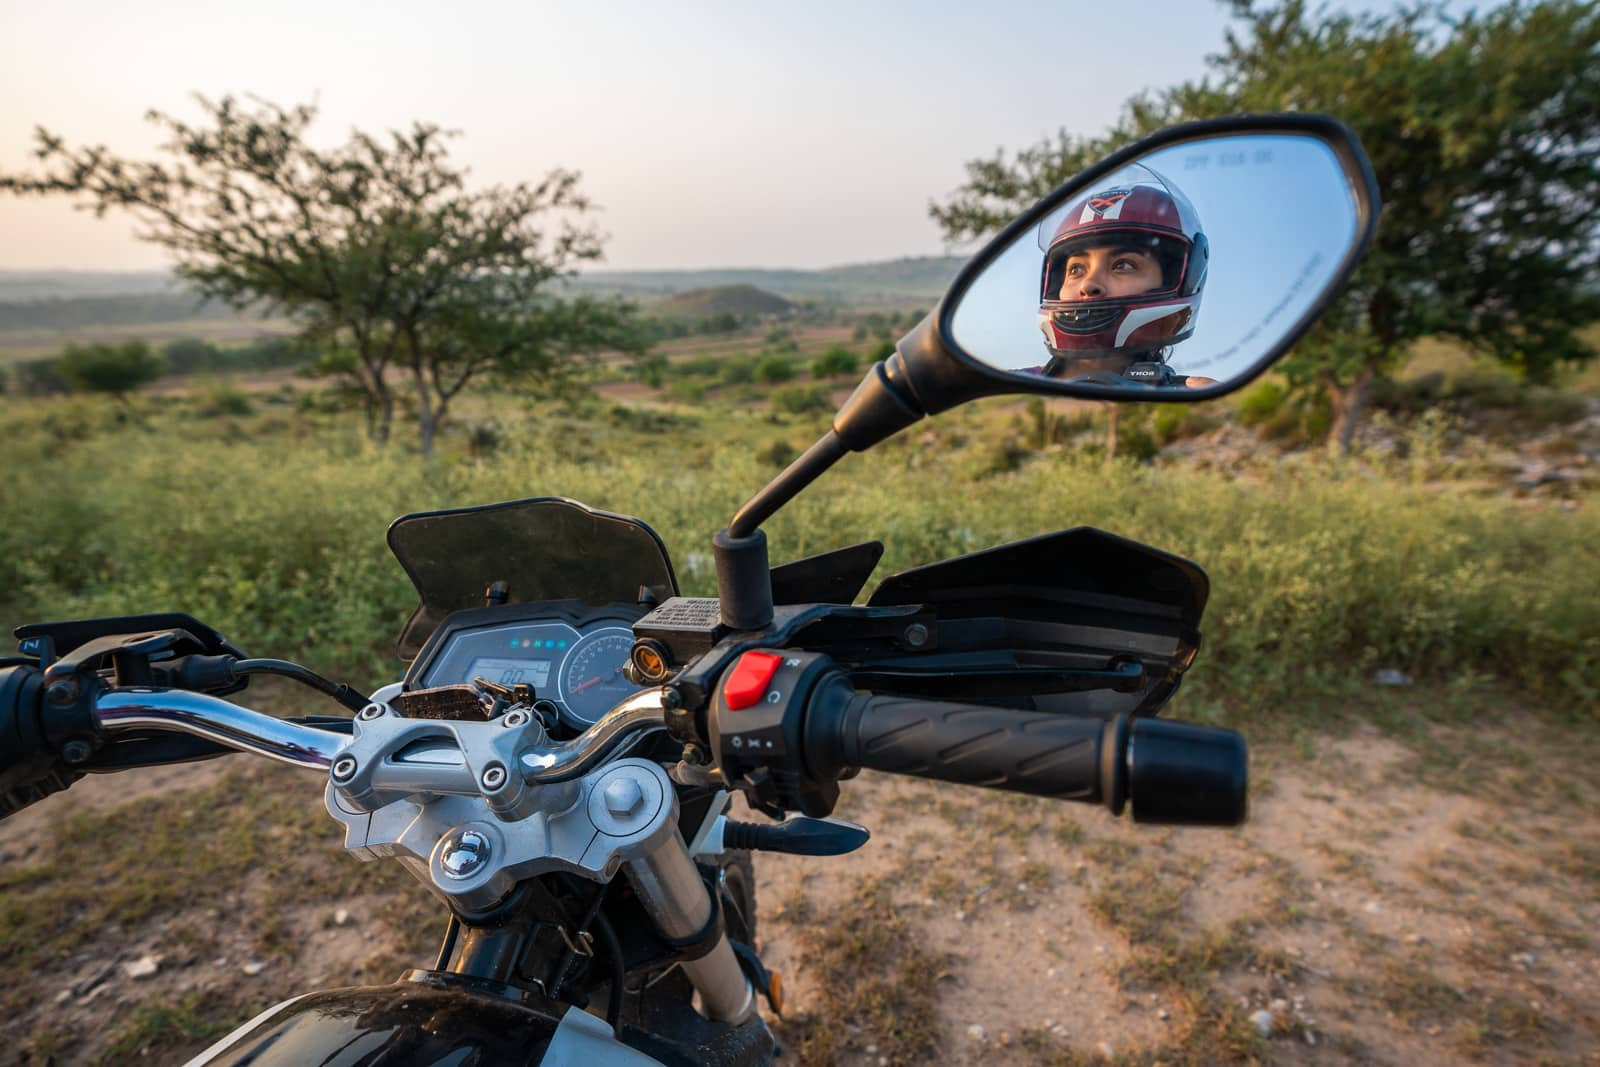 Learning to motorbike as a woman in Pakistan - Lost With Purpose travel blog